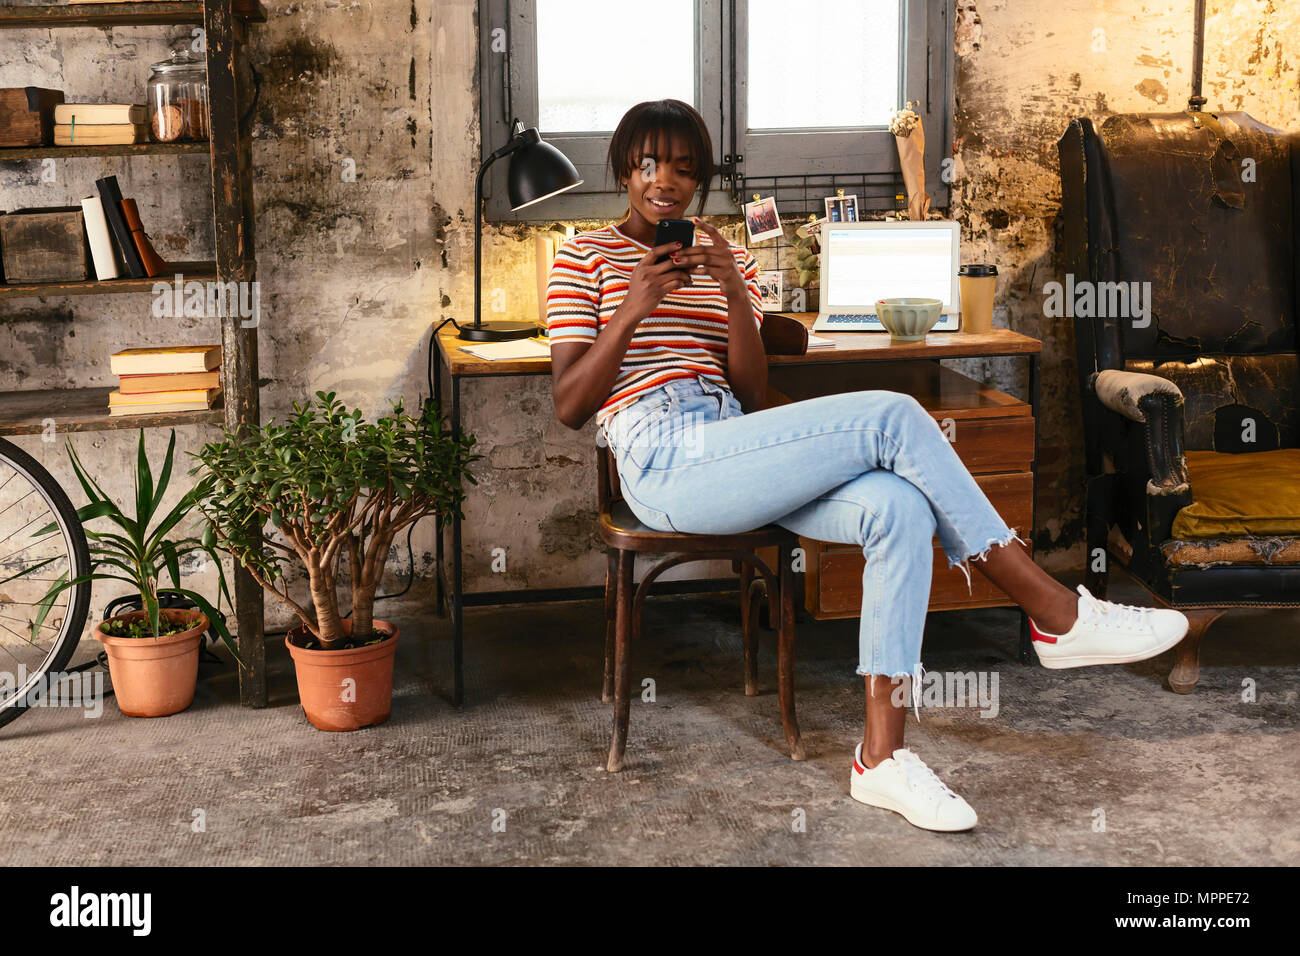 Young woman sitting in front of a desk in a loft using cell phone - Stock Image